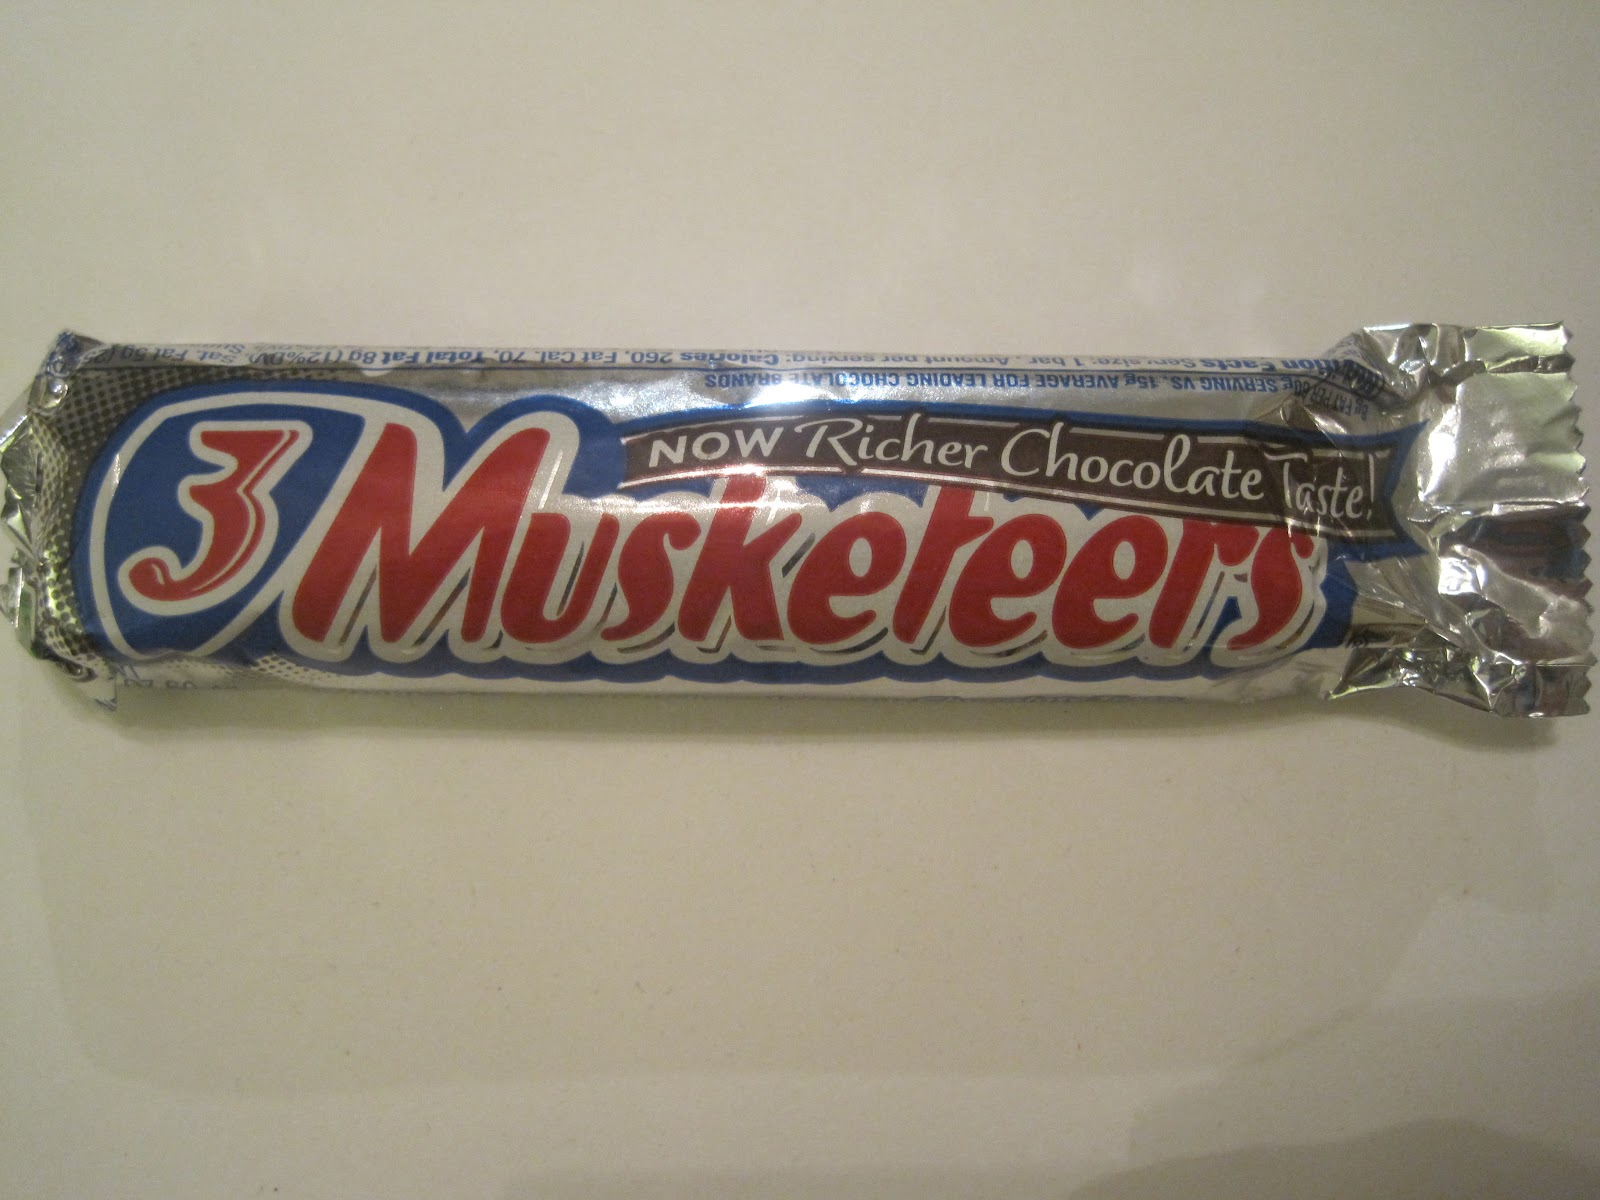 3 Musketeers review